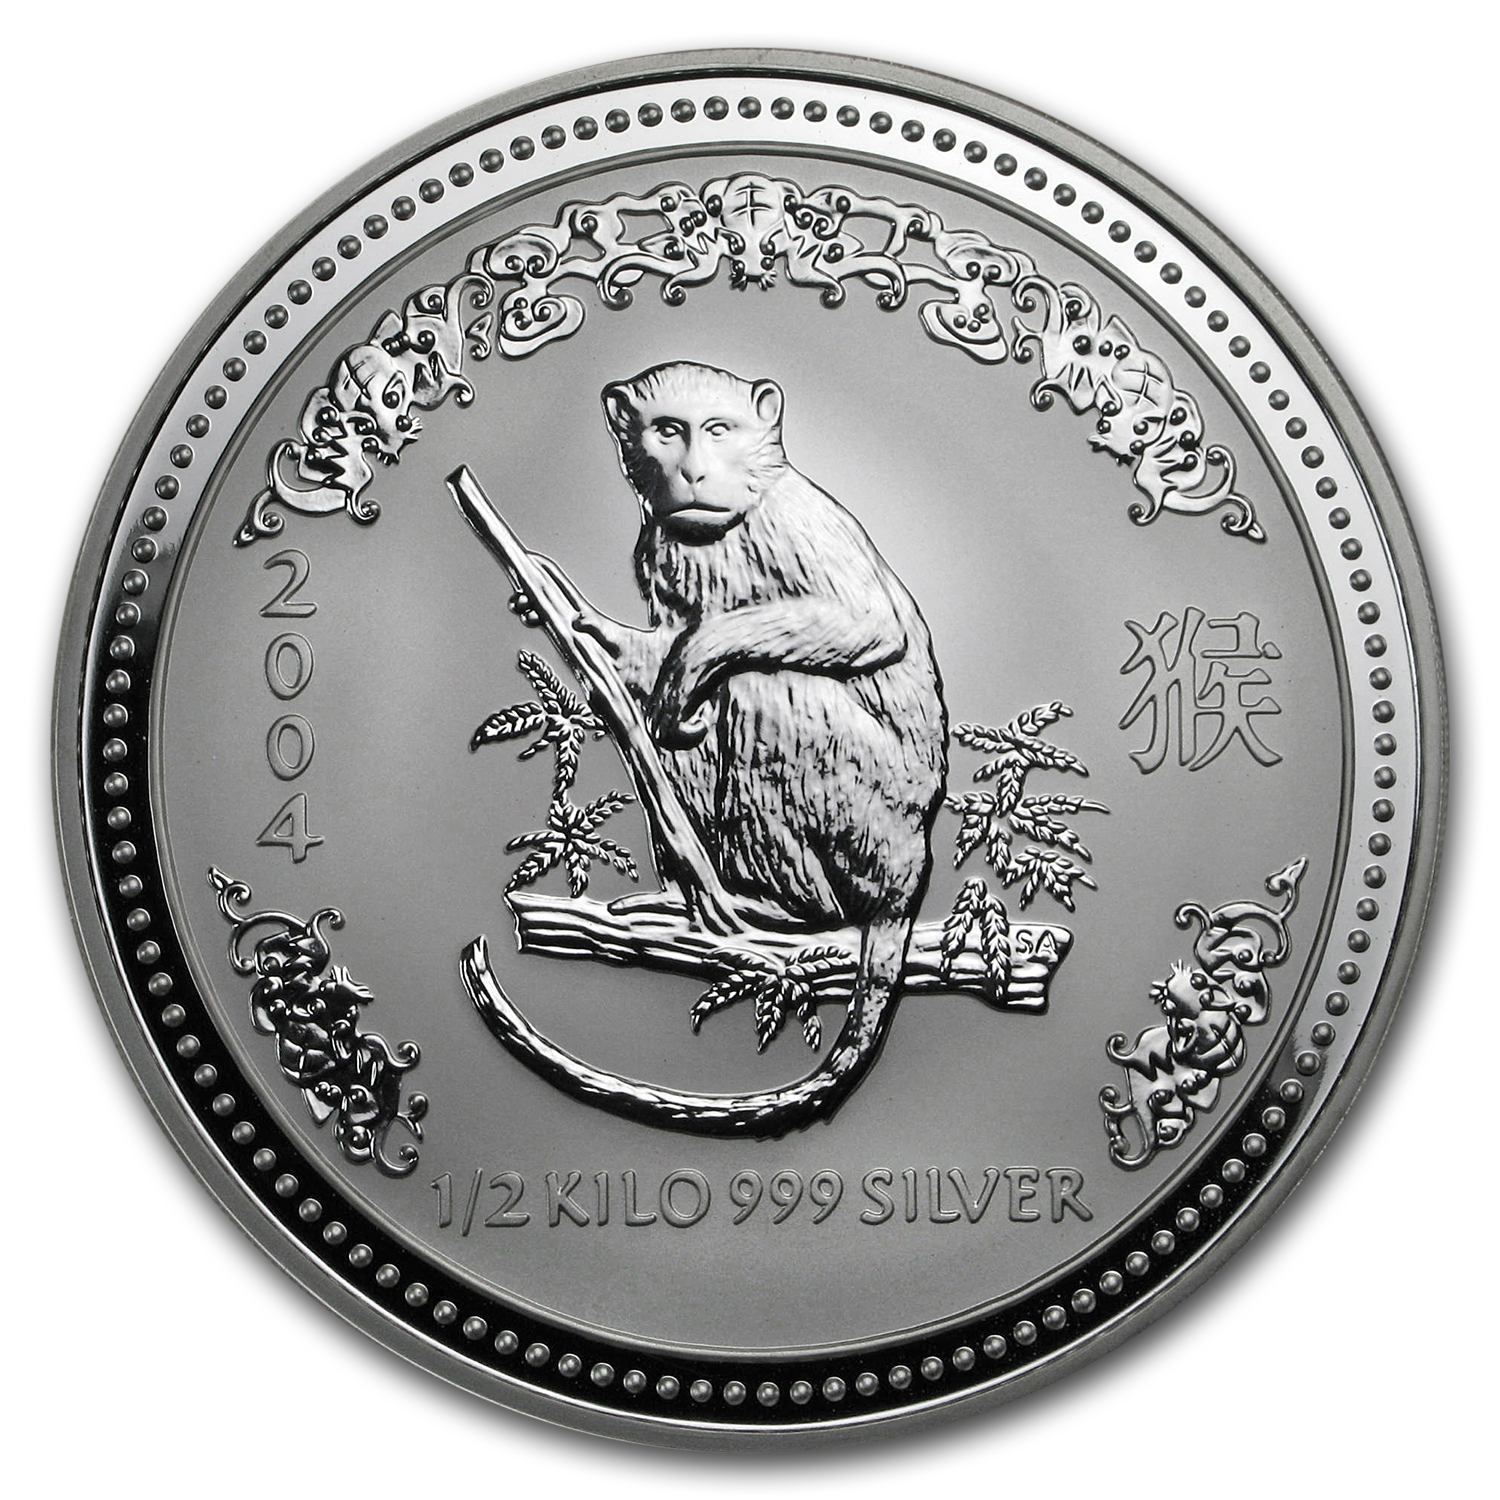 2004 Australia 1/2 kilo Silver Year of the Monkey BU